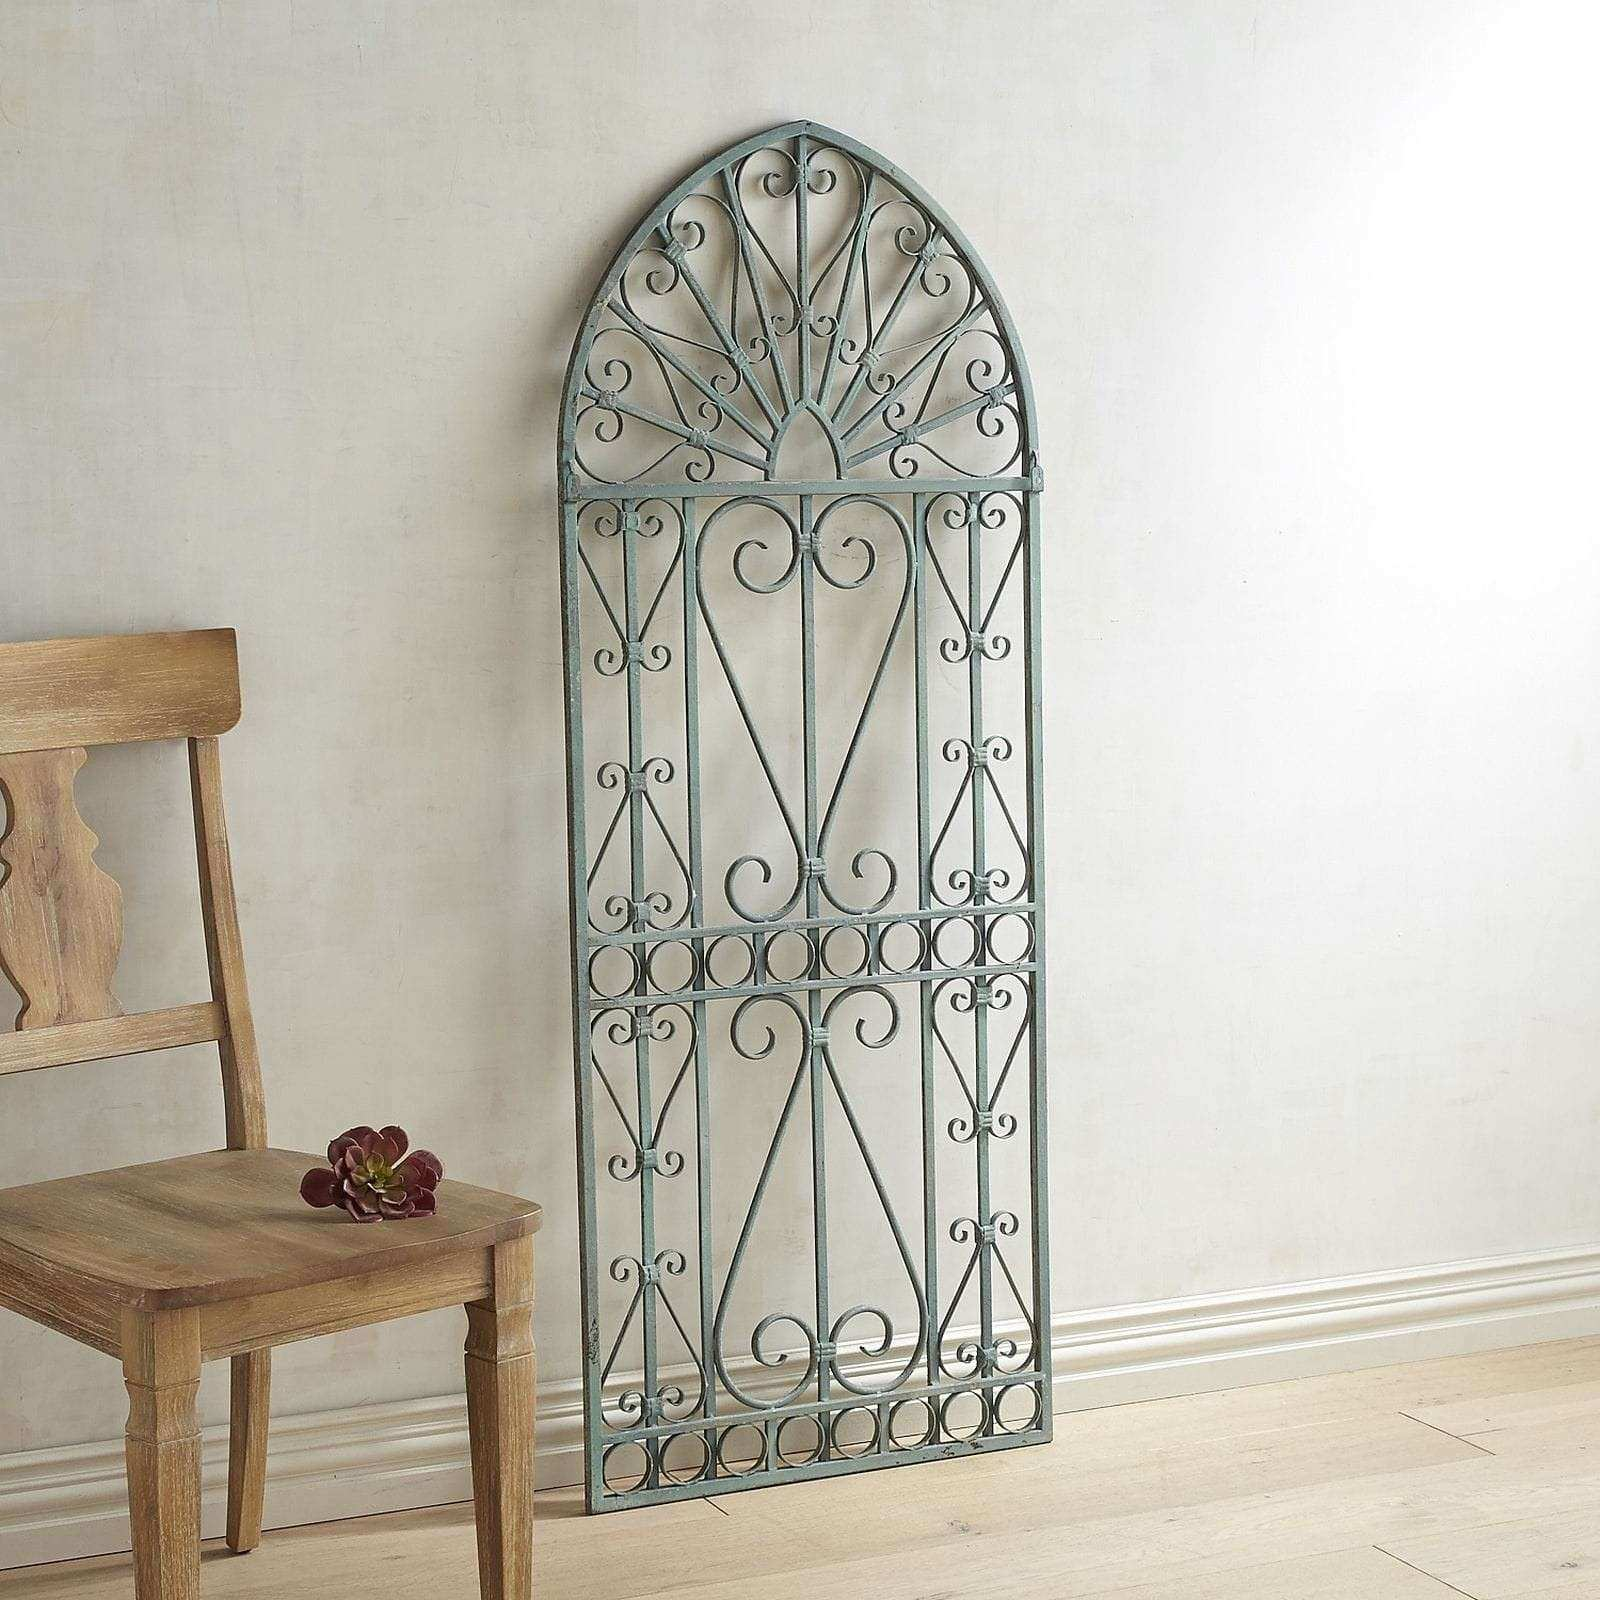 pier one mirrors and wall decor luxury garden gate wall decor | wall